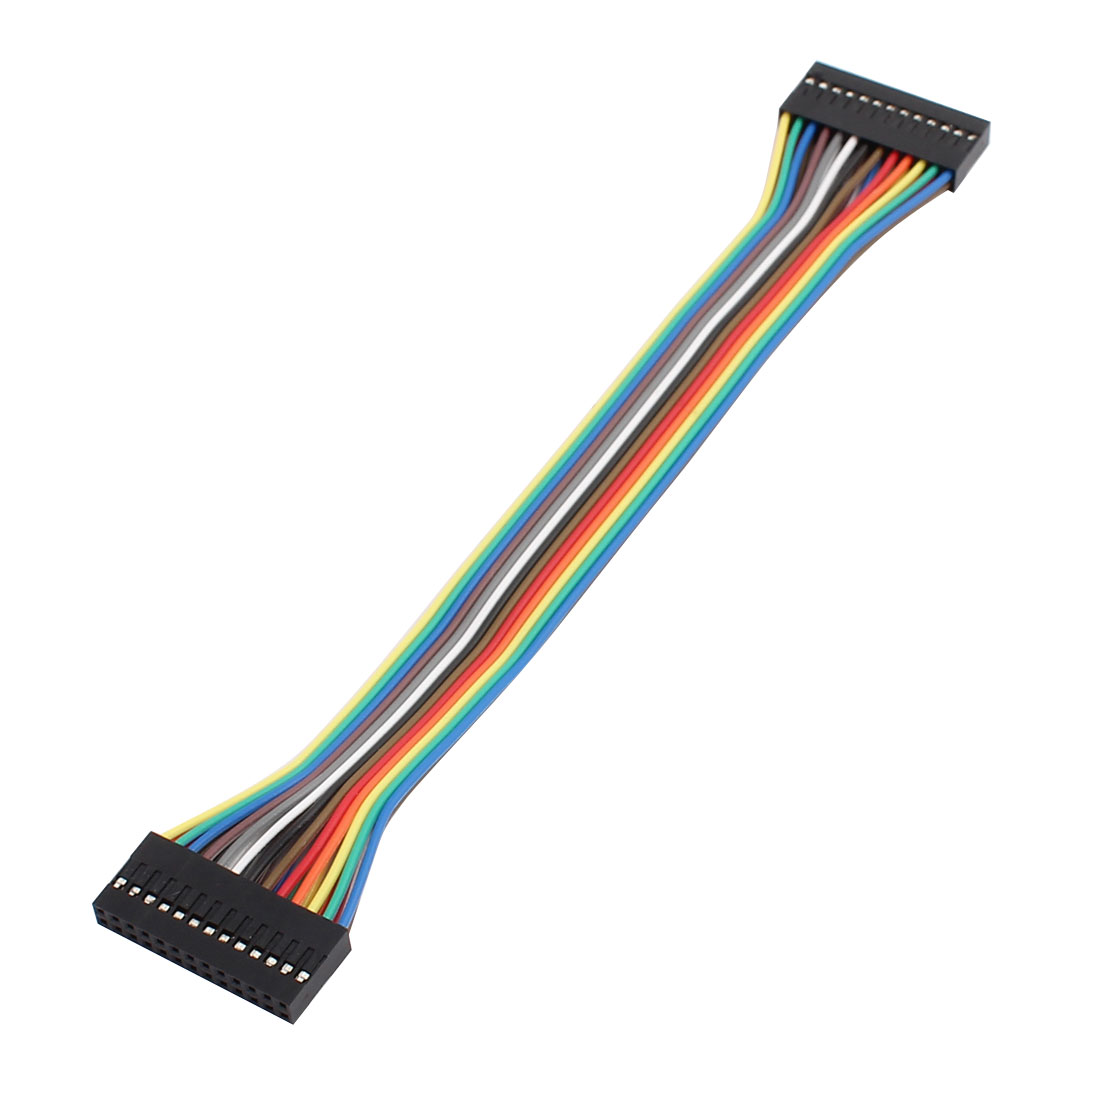 2x13P Jumper Wires Double Row Head Ribbon Cables Pi Pic Breadboard 21cm Long